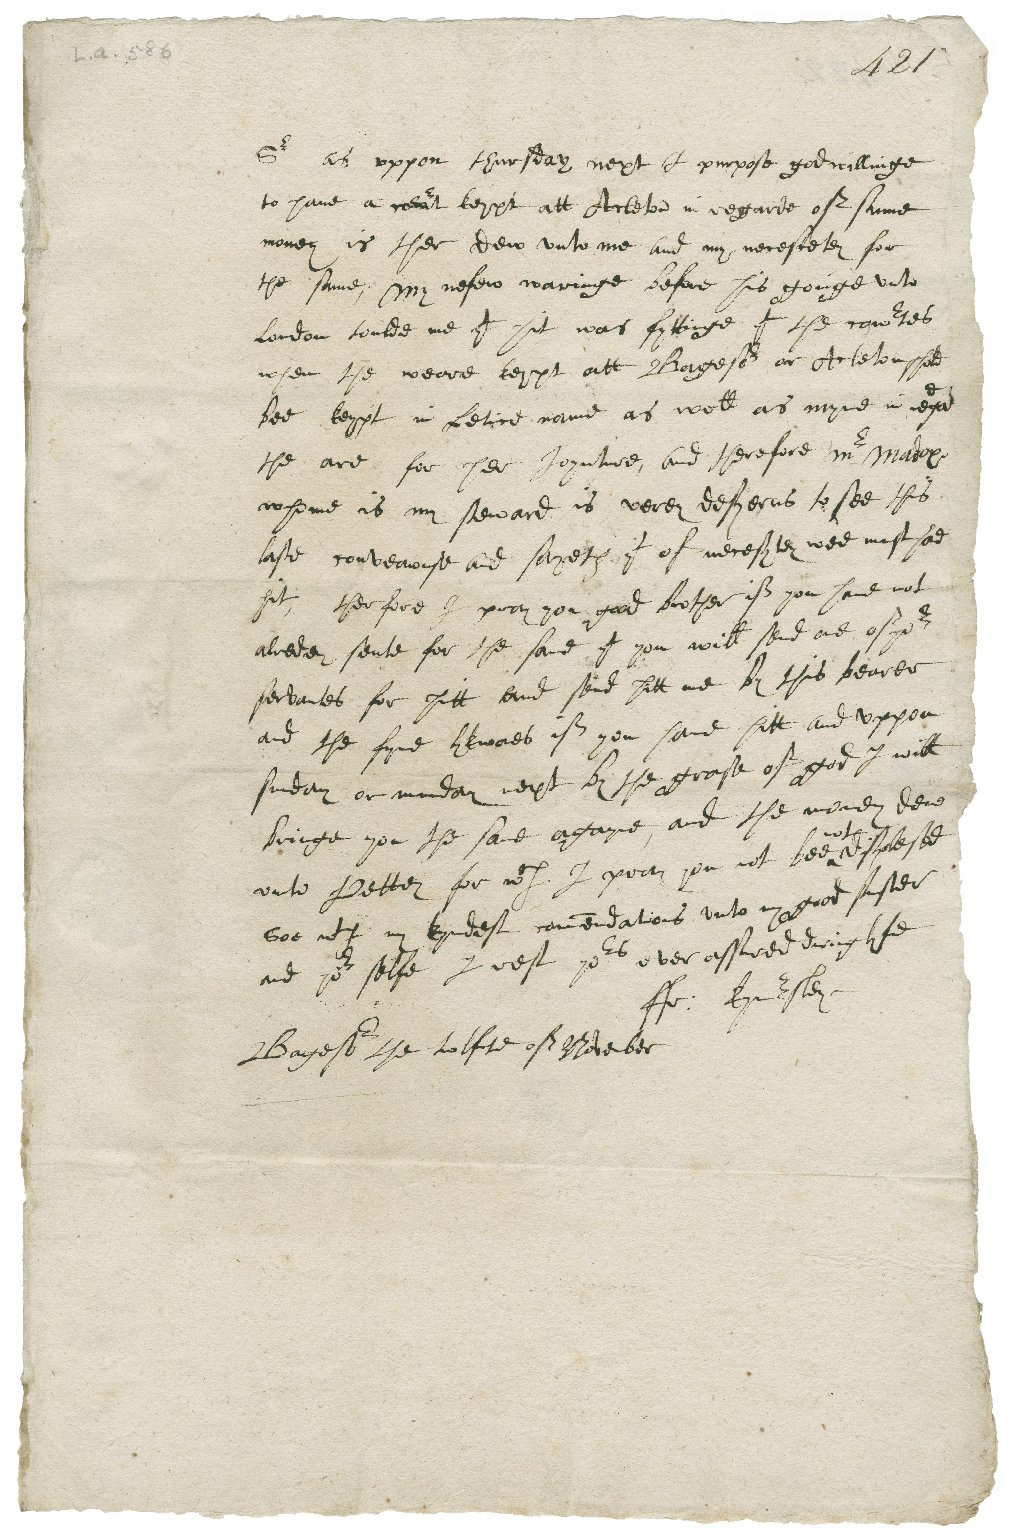 Letter from Francis Kynnersley, Badger, to Walter Bagot